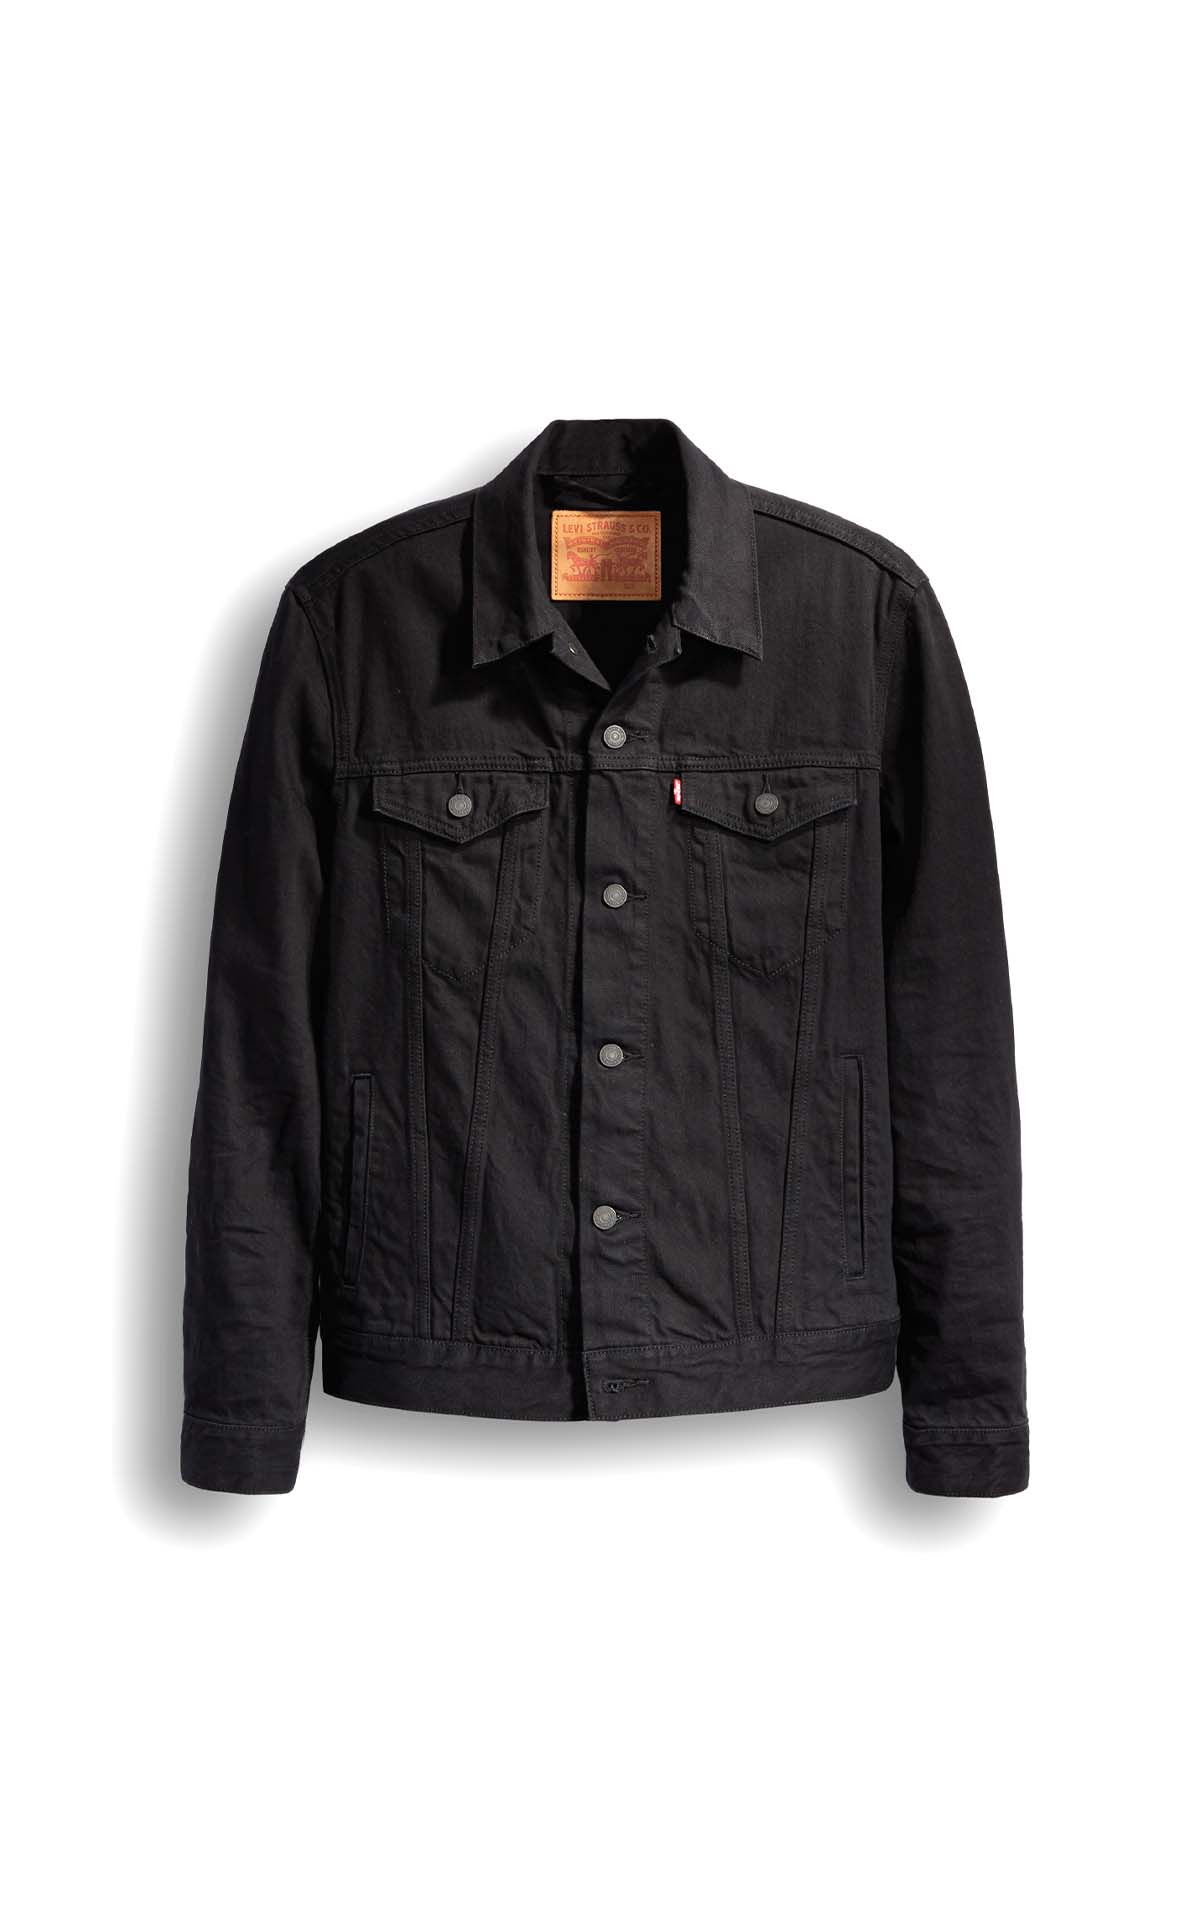 Levi's mens THE TRUCKER JACKET BERKMAN in black at The Bicester Village Shopping Collection